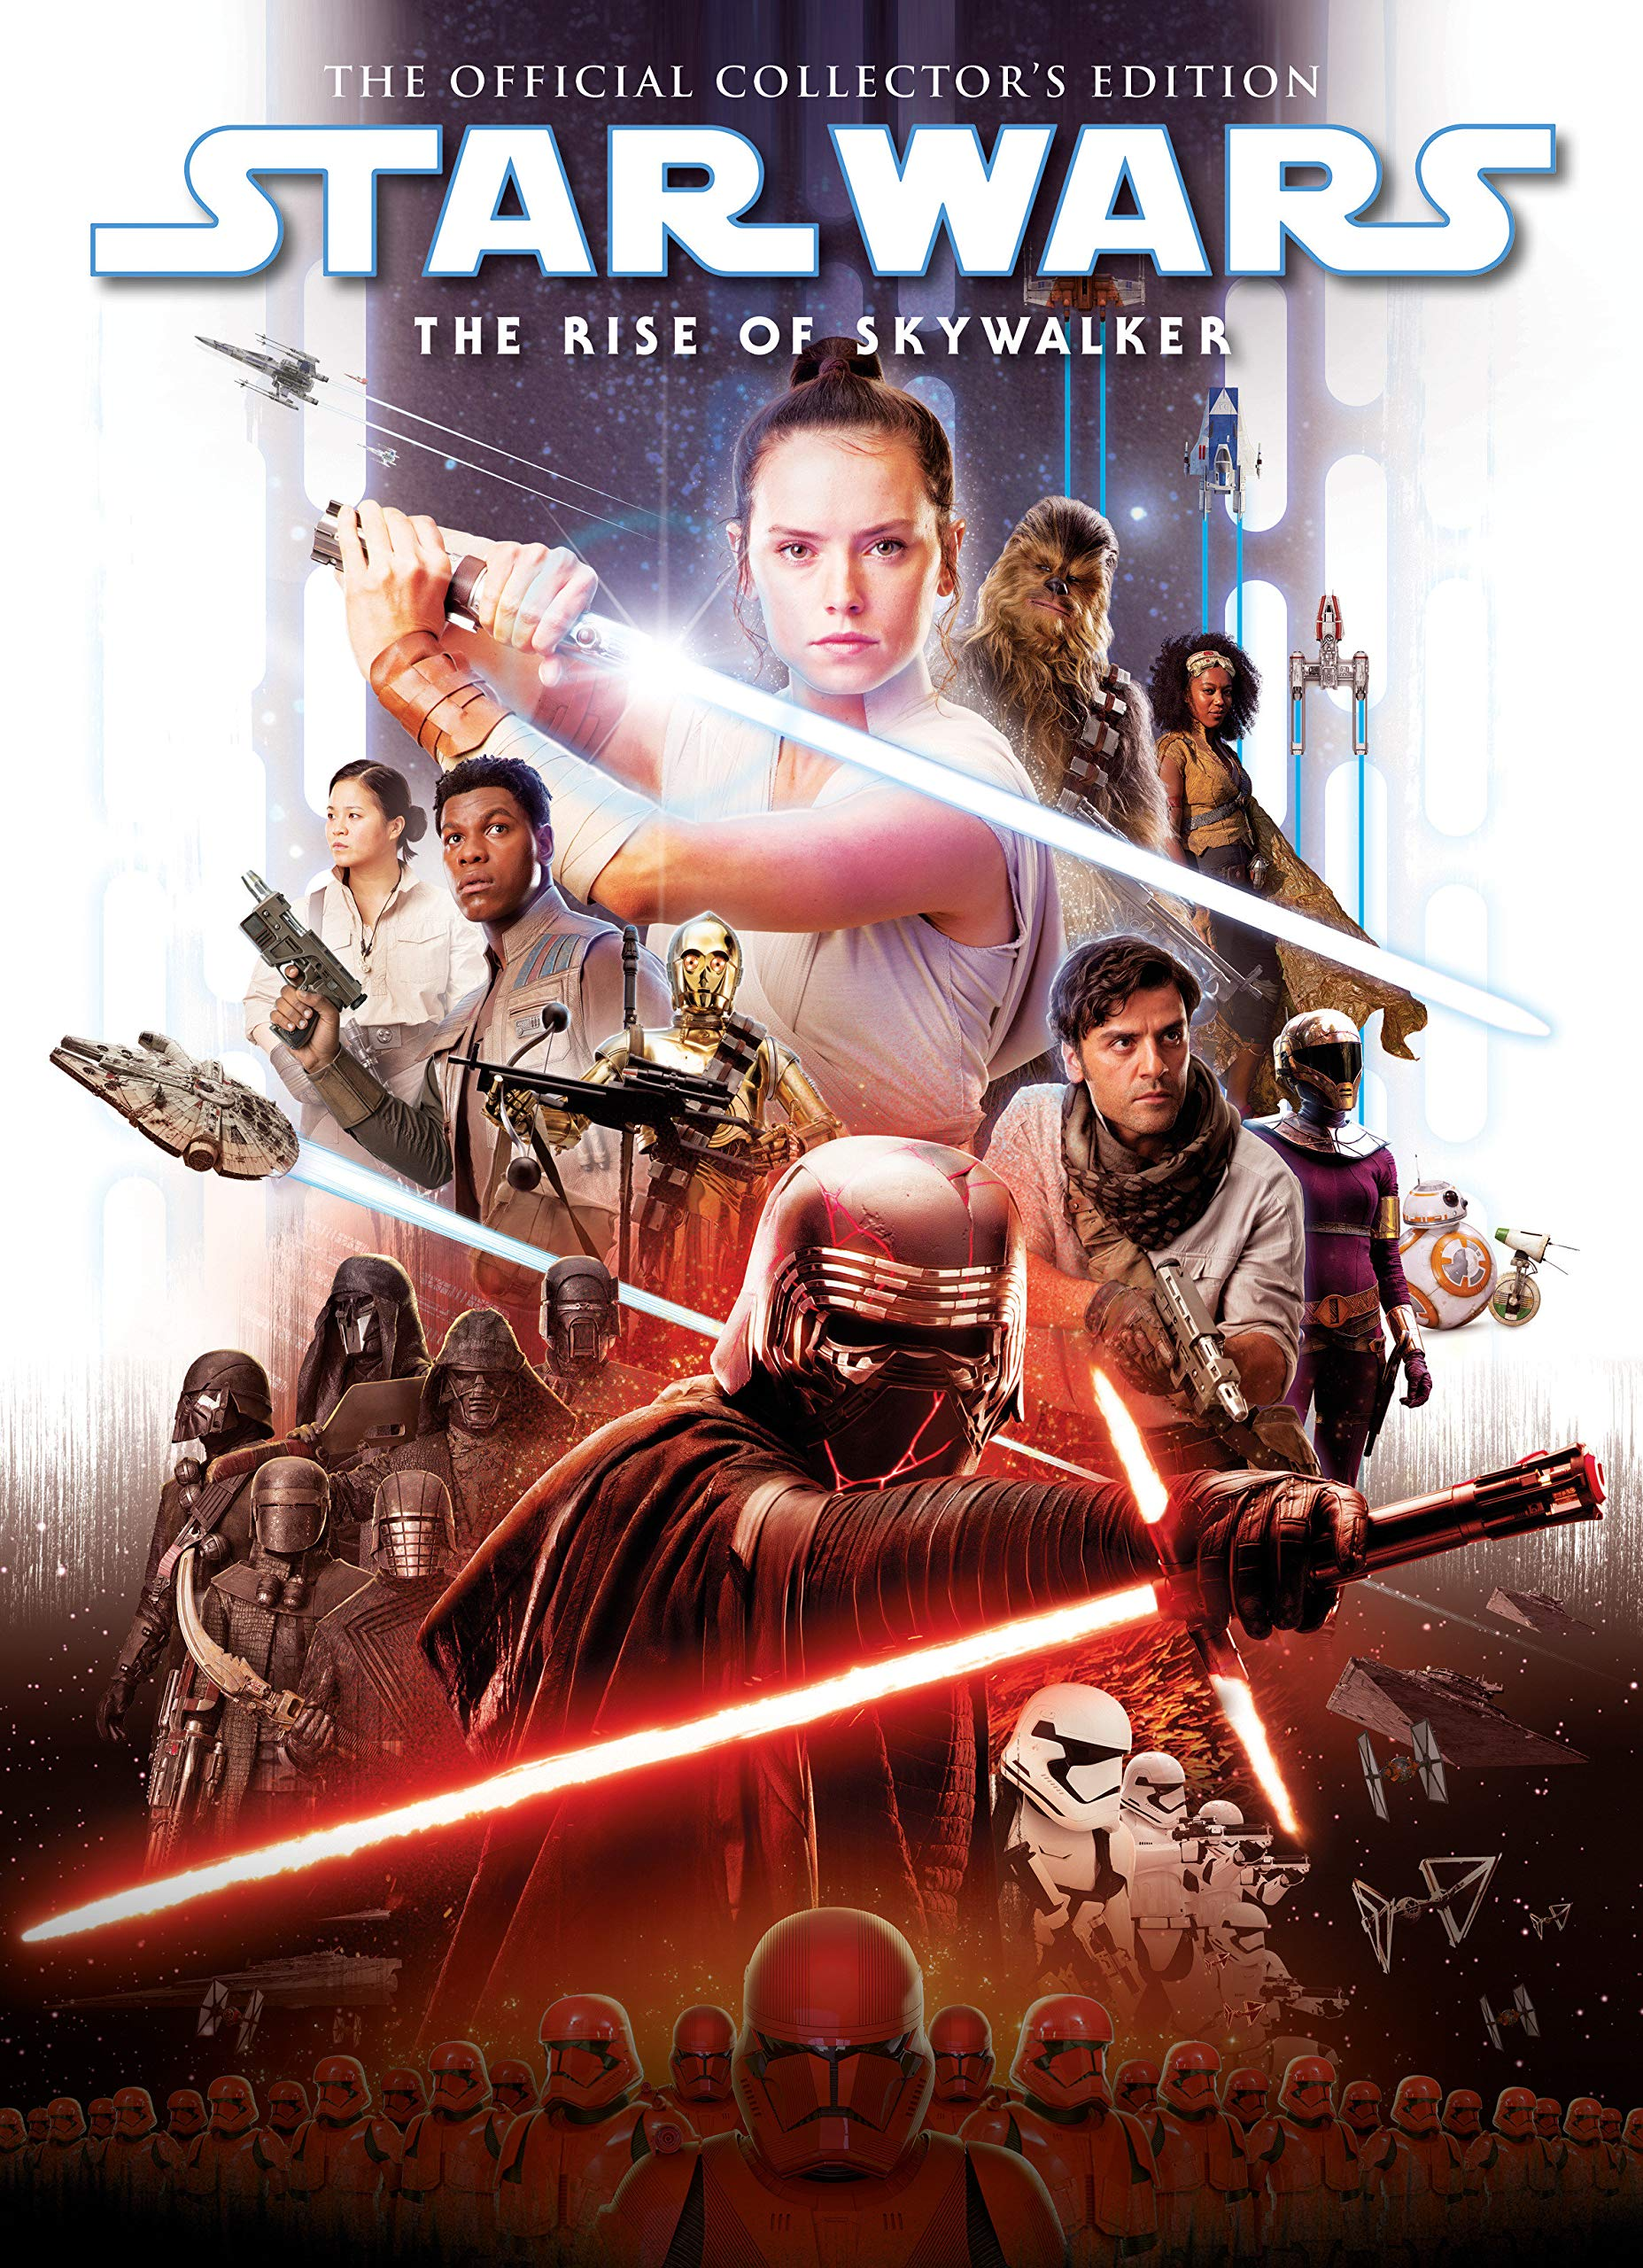 Buy Star Wars: The Rise of Skywalker The Official Collector's Edition Book Book Online at Low Prices in India | Star Wars: The Rise of Skywalker The Official Collector's Edition Book Reviews